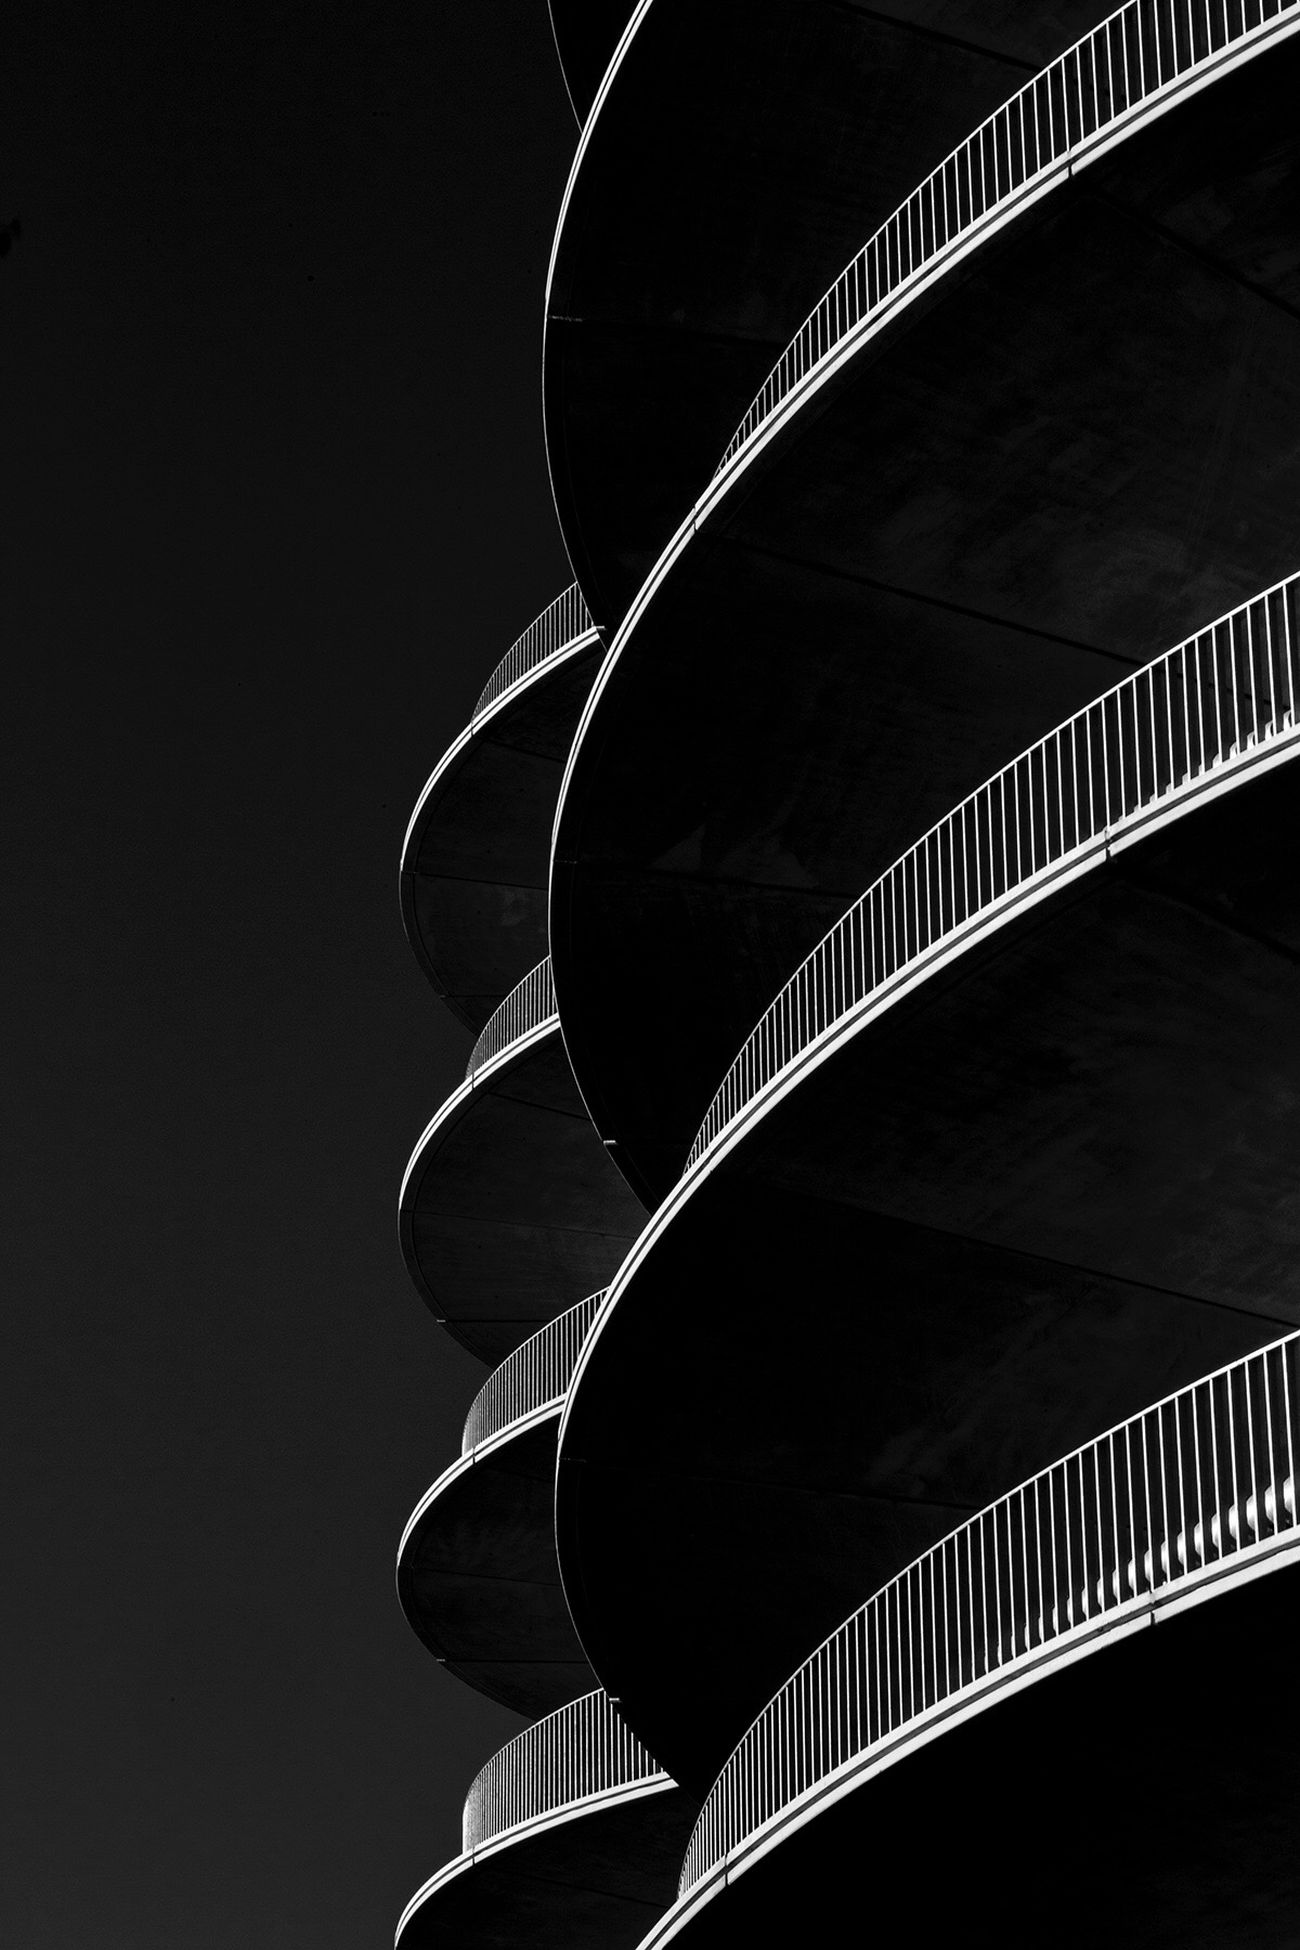 Architecture Pattern, Texture, Shape And Form Black Background No People City Built Structure Modern Details Architecture_collection Architecture Architecture Photography Architecturephotography Architectureporn Architectural Feature Architecture_collection Architecturelovers Welcome Weekly